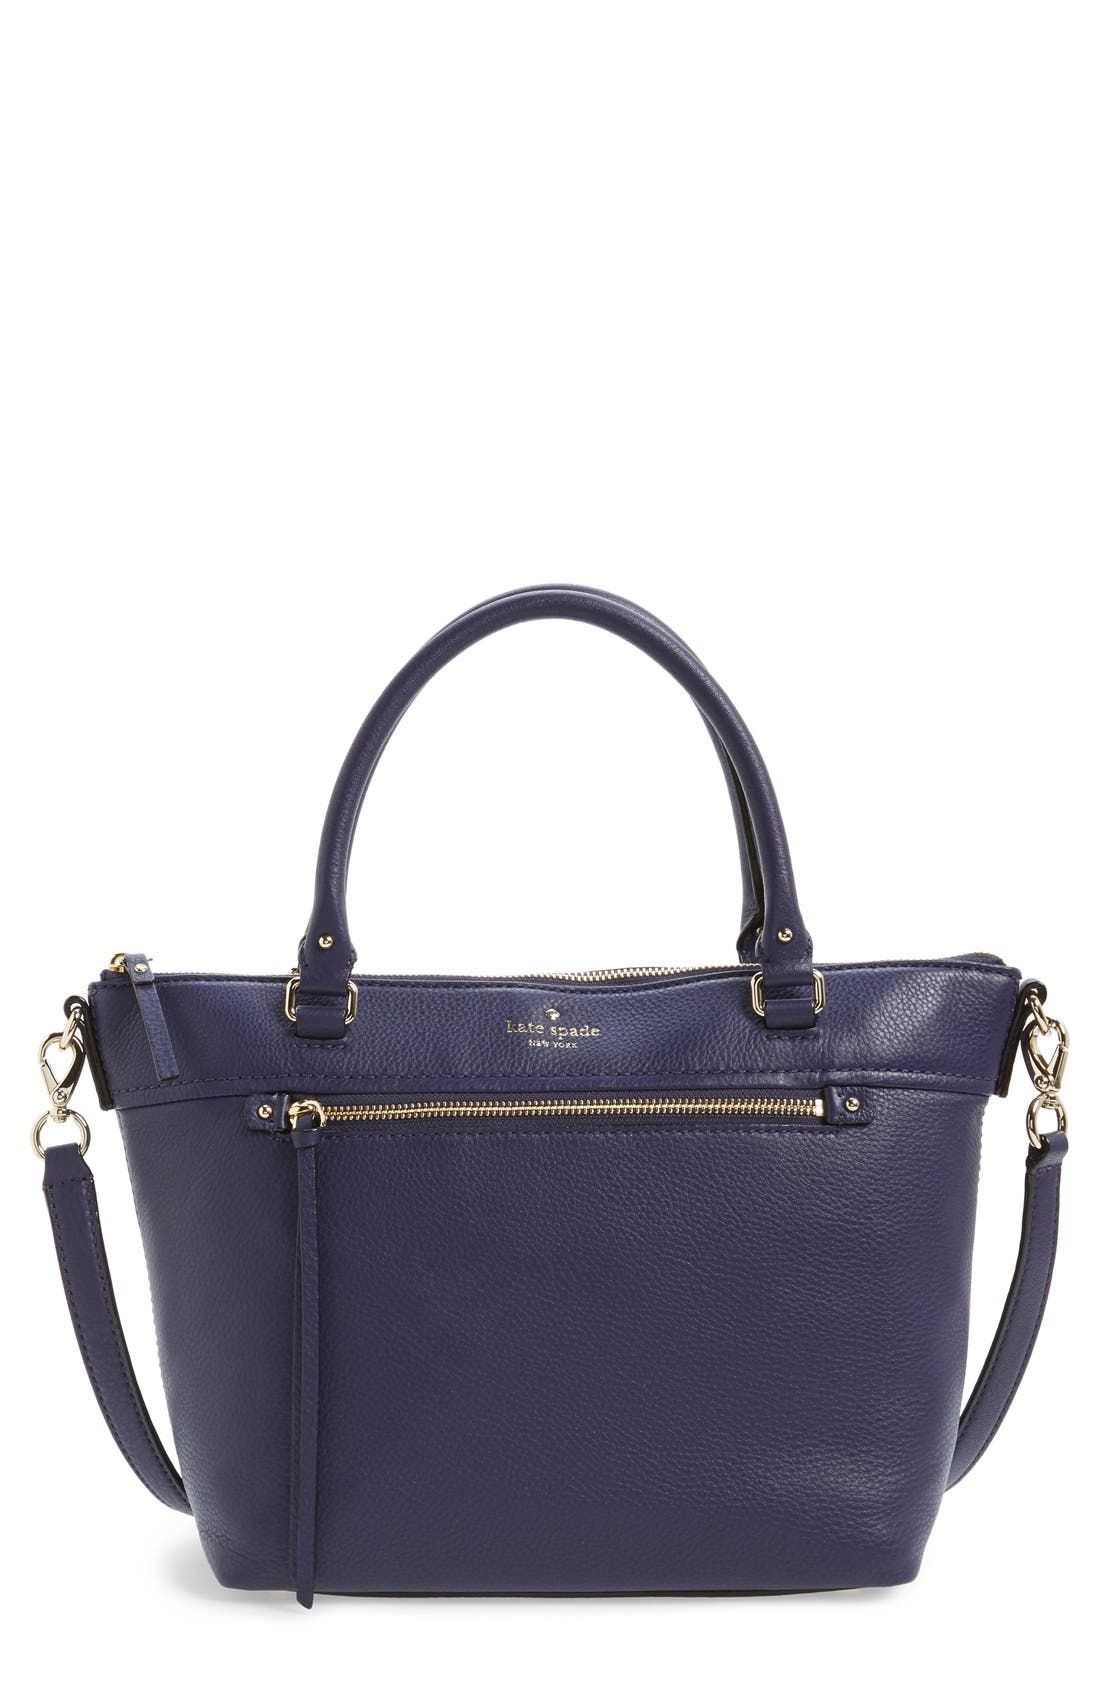 Alternate Image 1 Selected - kate spade new york 'cobble hill - small gina' leather tote